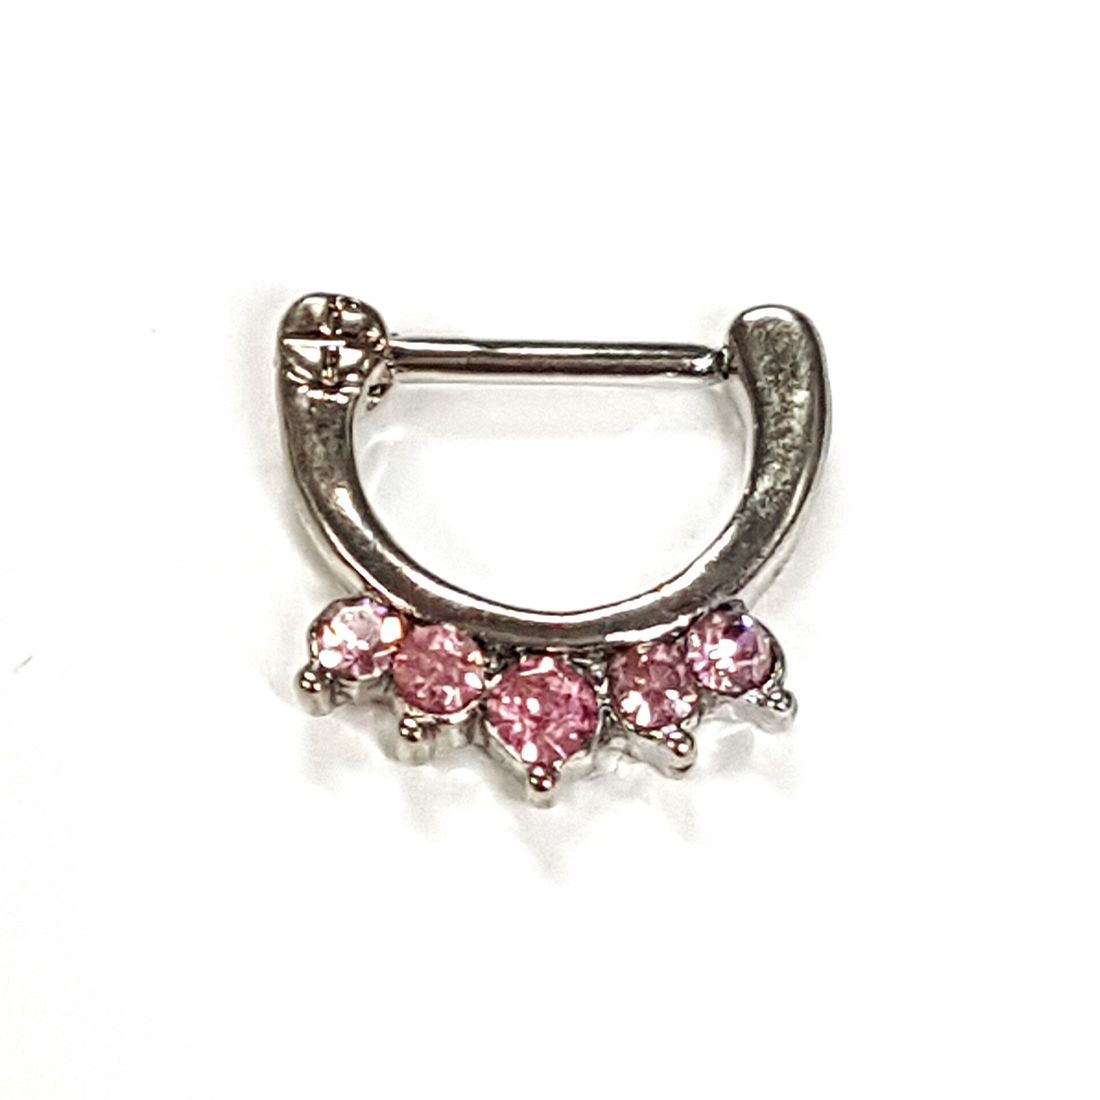 1.2 pink crystal titanium septum clicker  available at Kazbah online and our Leicester City Centre Shop